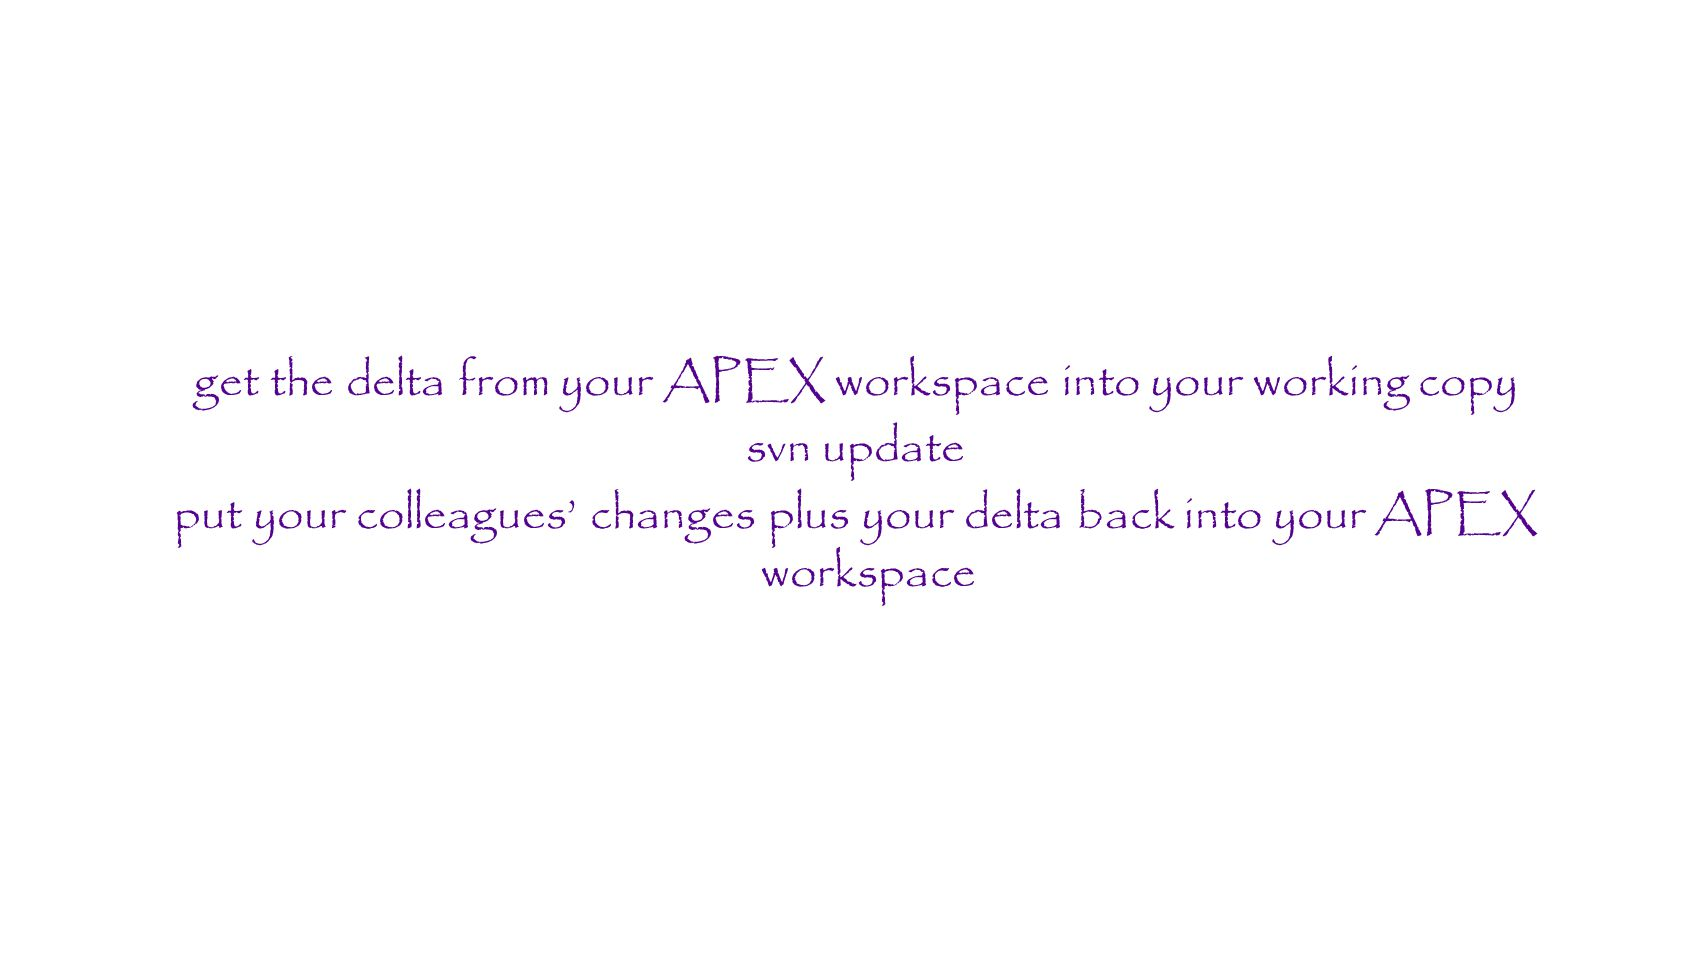 get the delta from your APEX workspace into your working copy